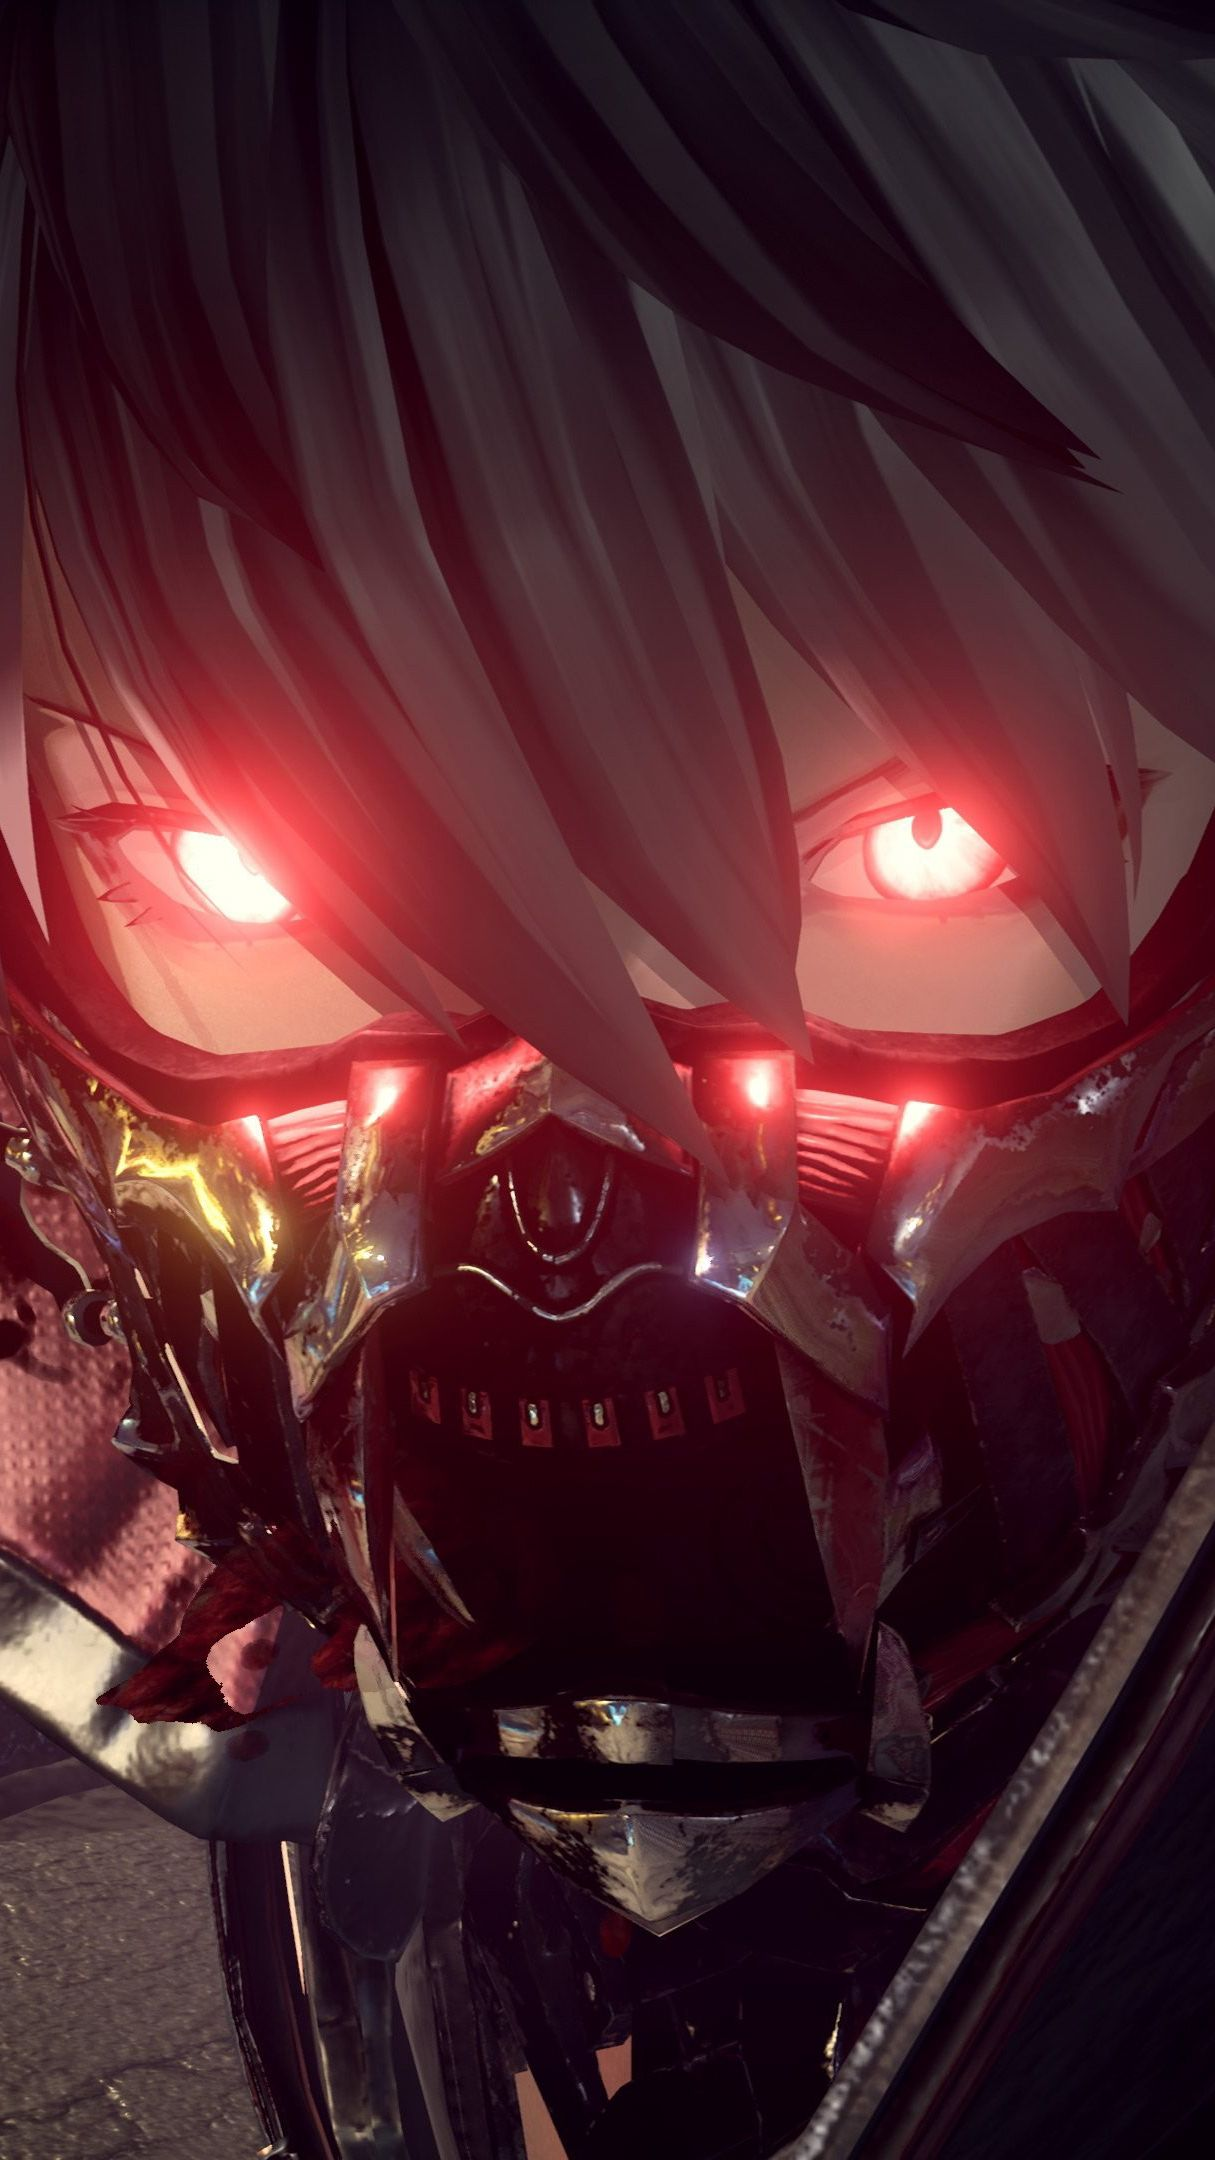 Code Vein Anime Mobile Hd Wallpaper In 2020 Anime Mobile Anime Drawings Boy Anime